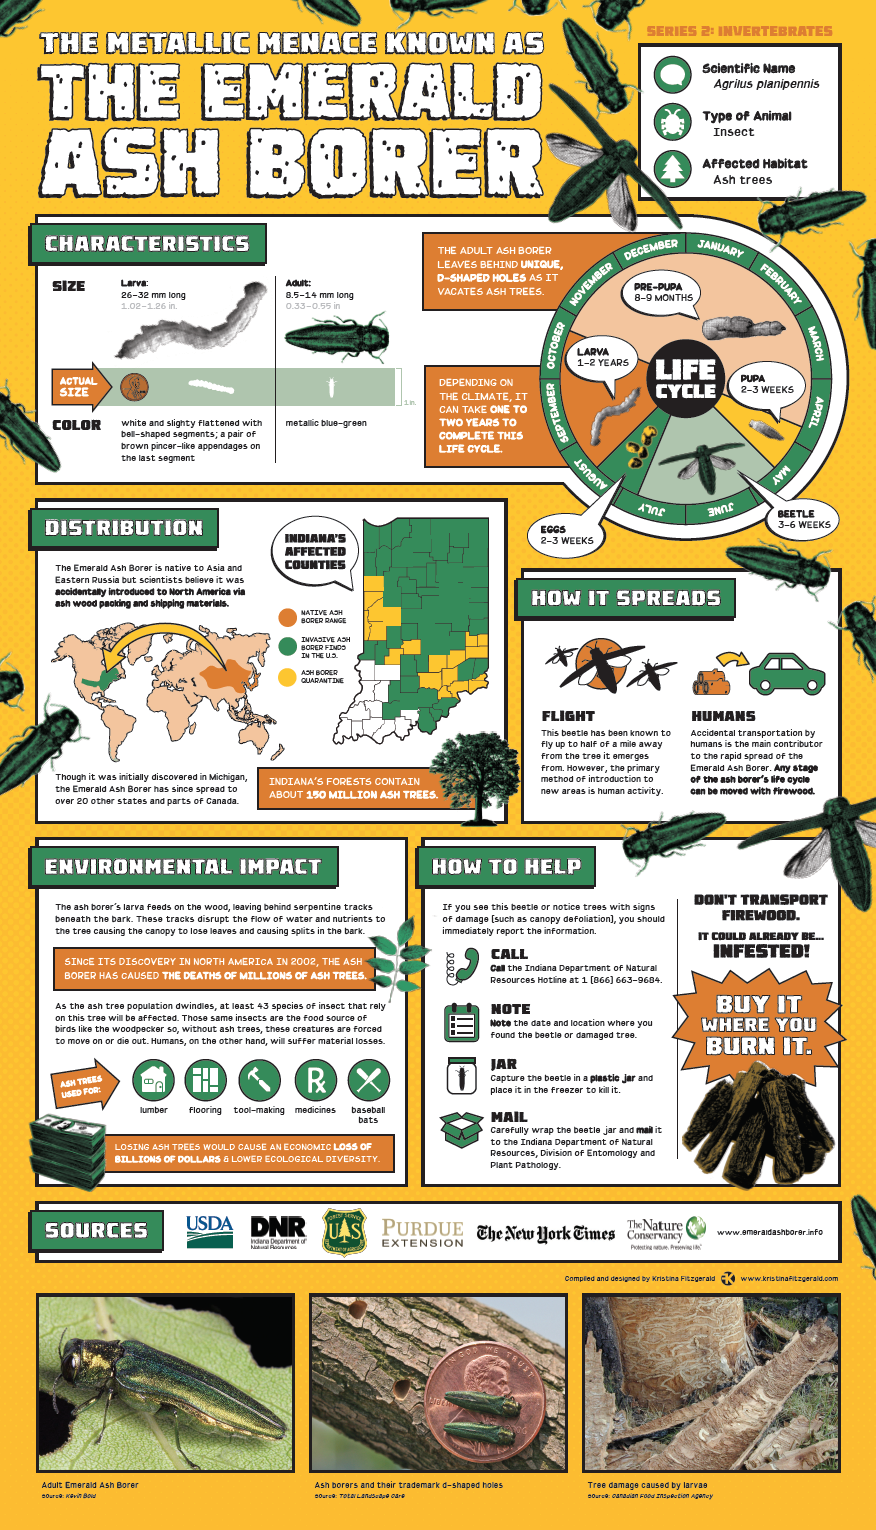 Invasive Species Posters - Emerald Ash Borer